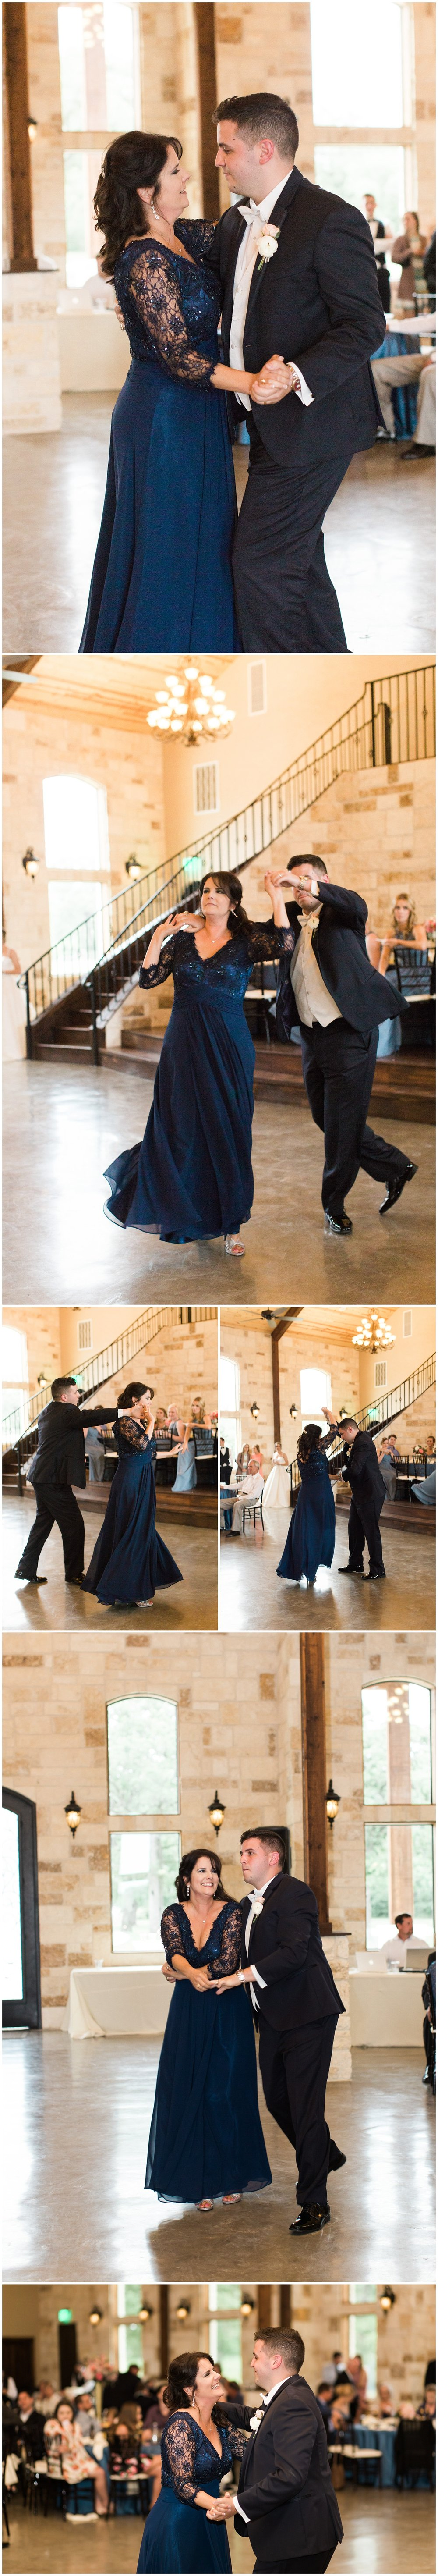 Brownstone_Reserve_Wedding_Kristina_Ross_Photography_0035.jpg